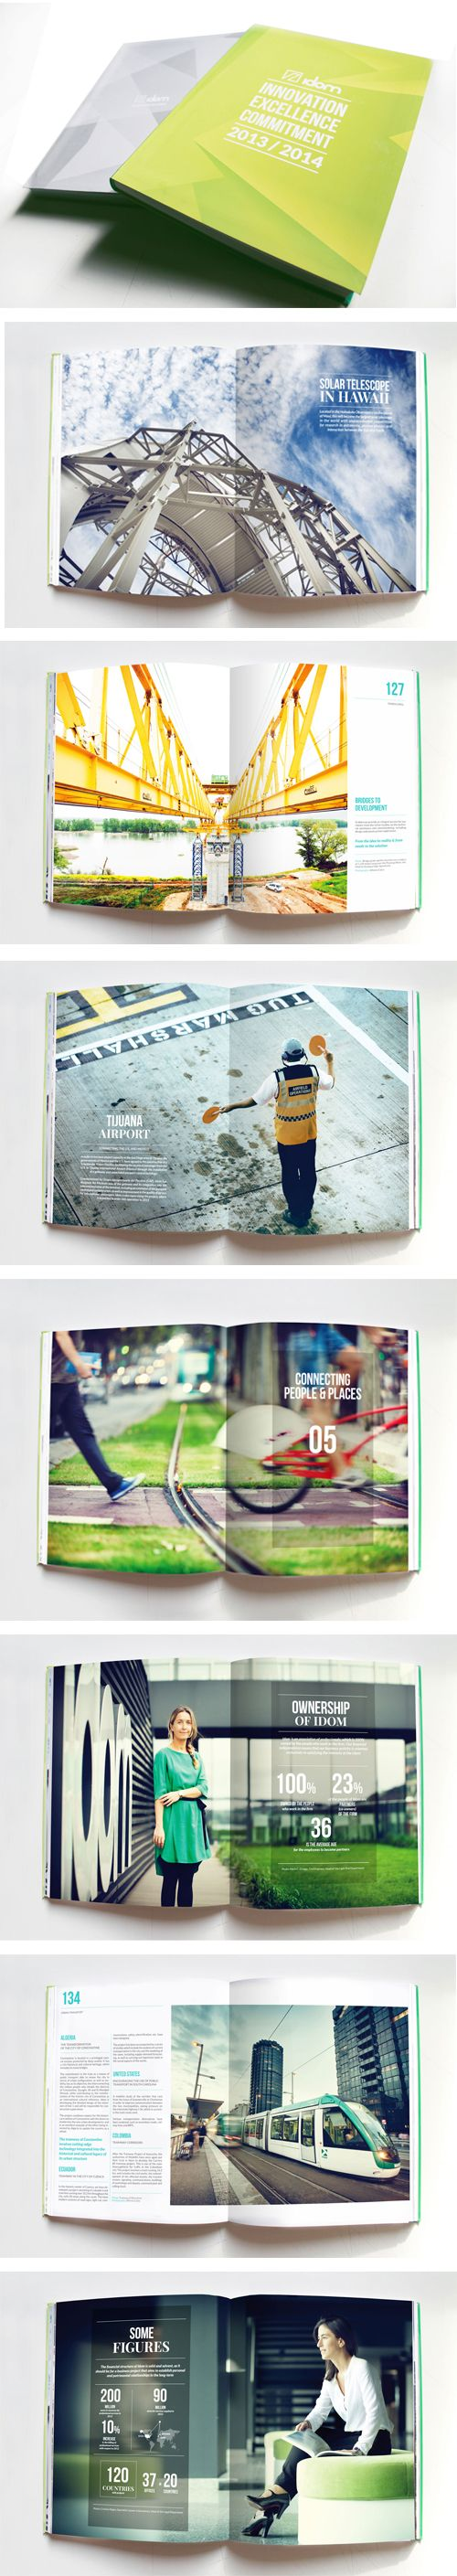 Idom Annual report 2014 designed by Muak Studio www.muak.cc/